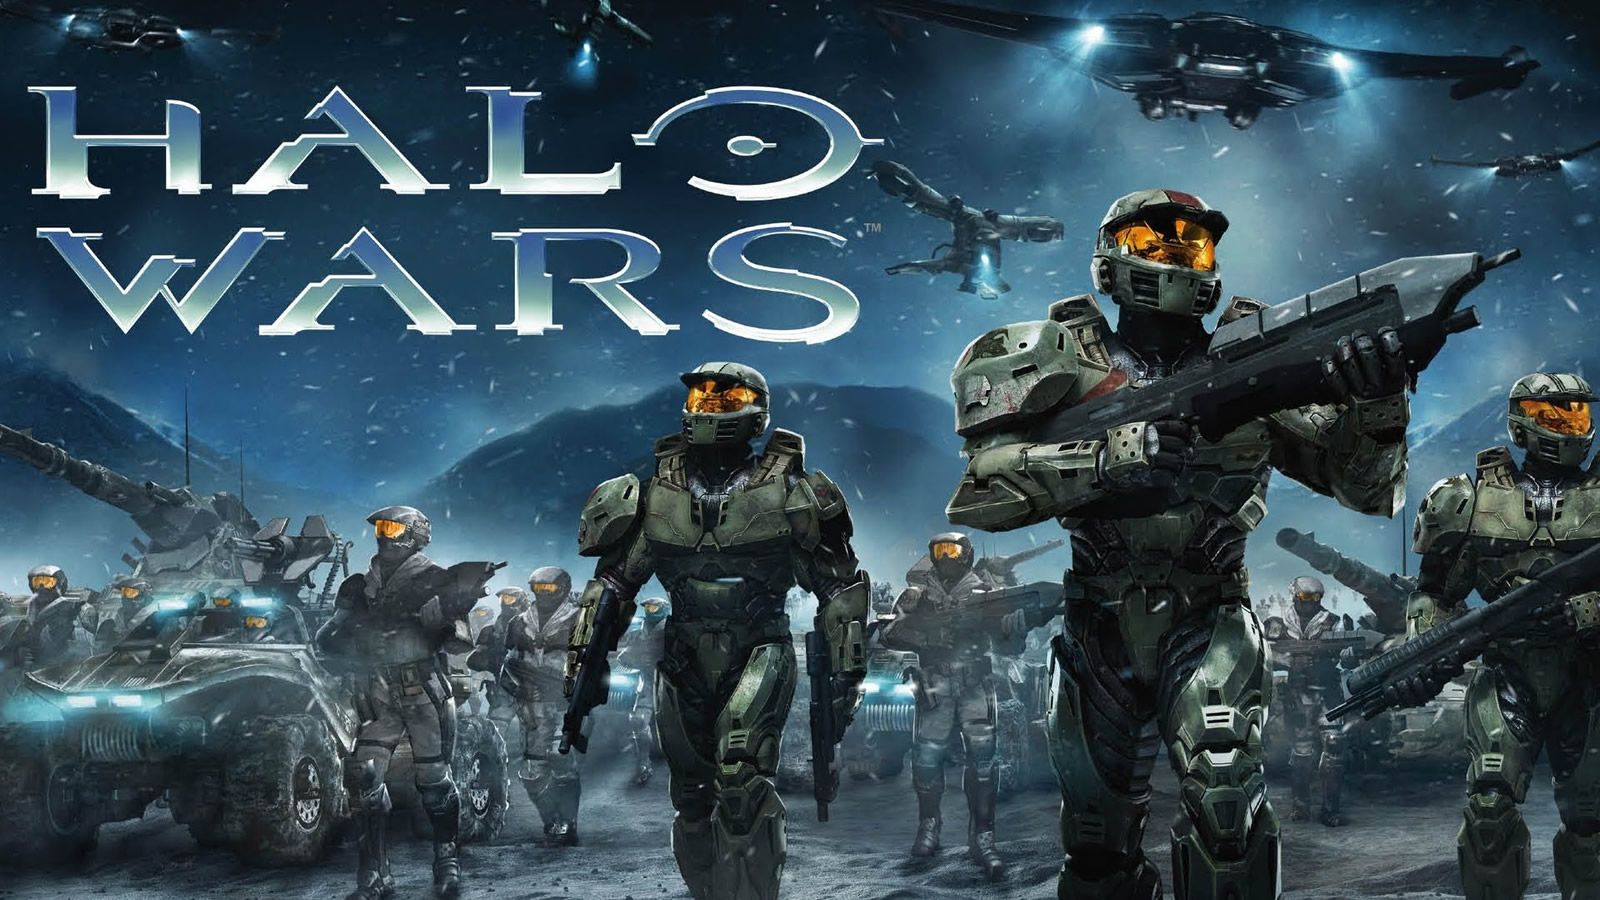 You can finally play Halo Wars on Xbox One - Gearburn